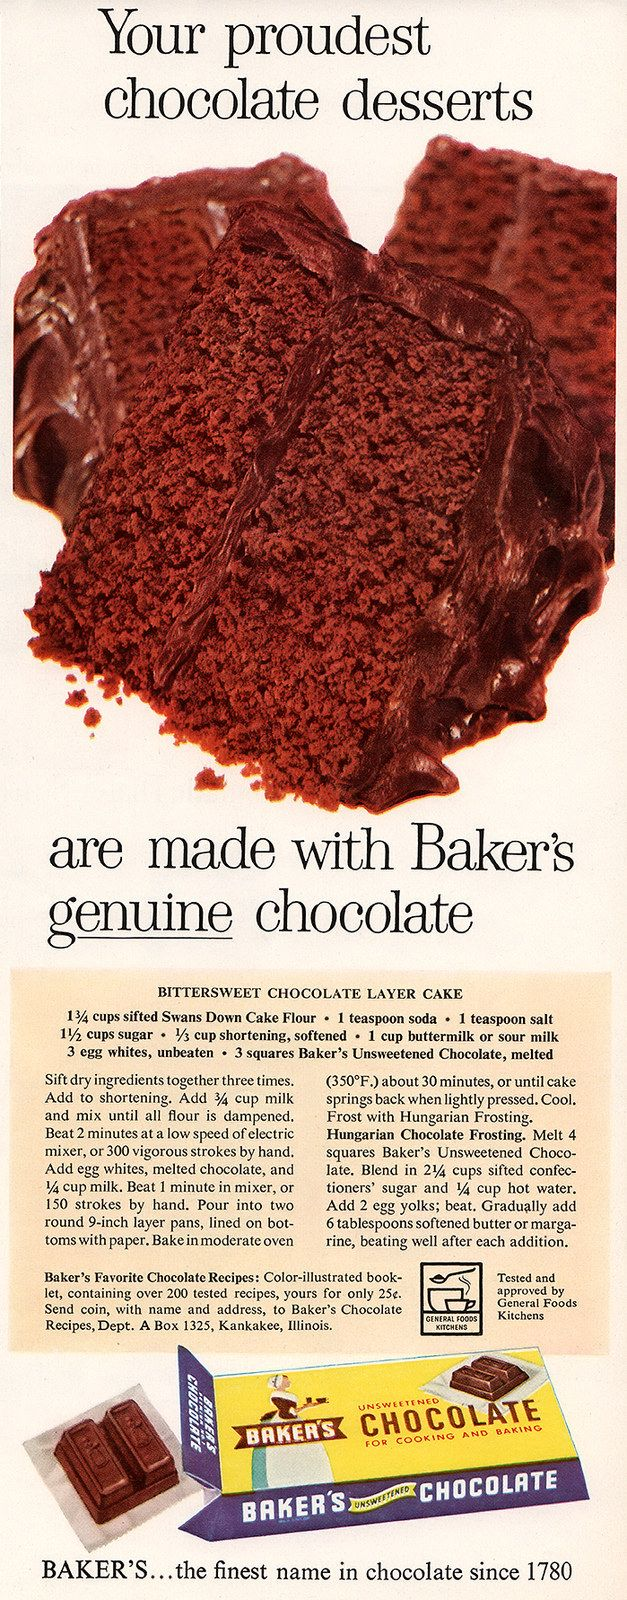 526 best Retro Chocolate images on Pinterest | Vintage recipes ...